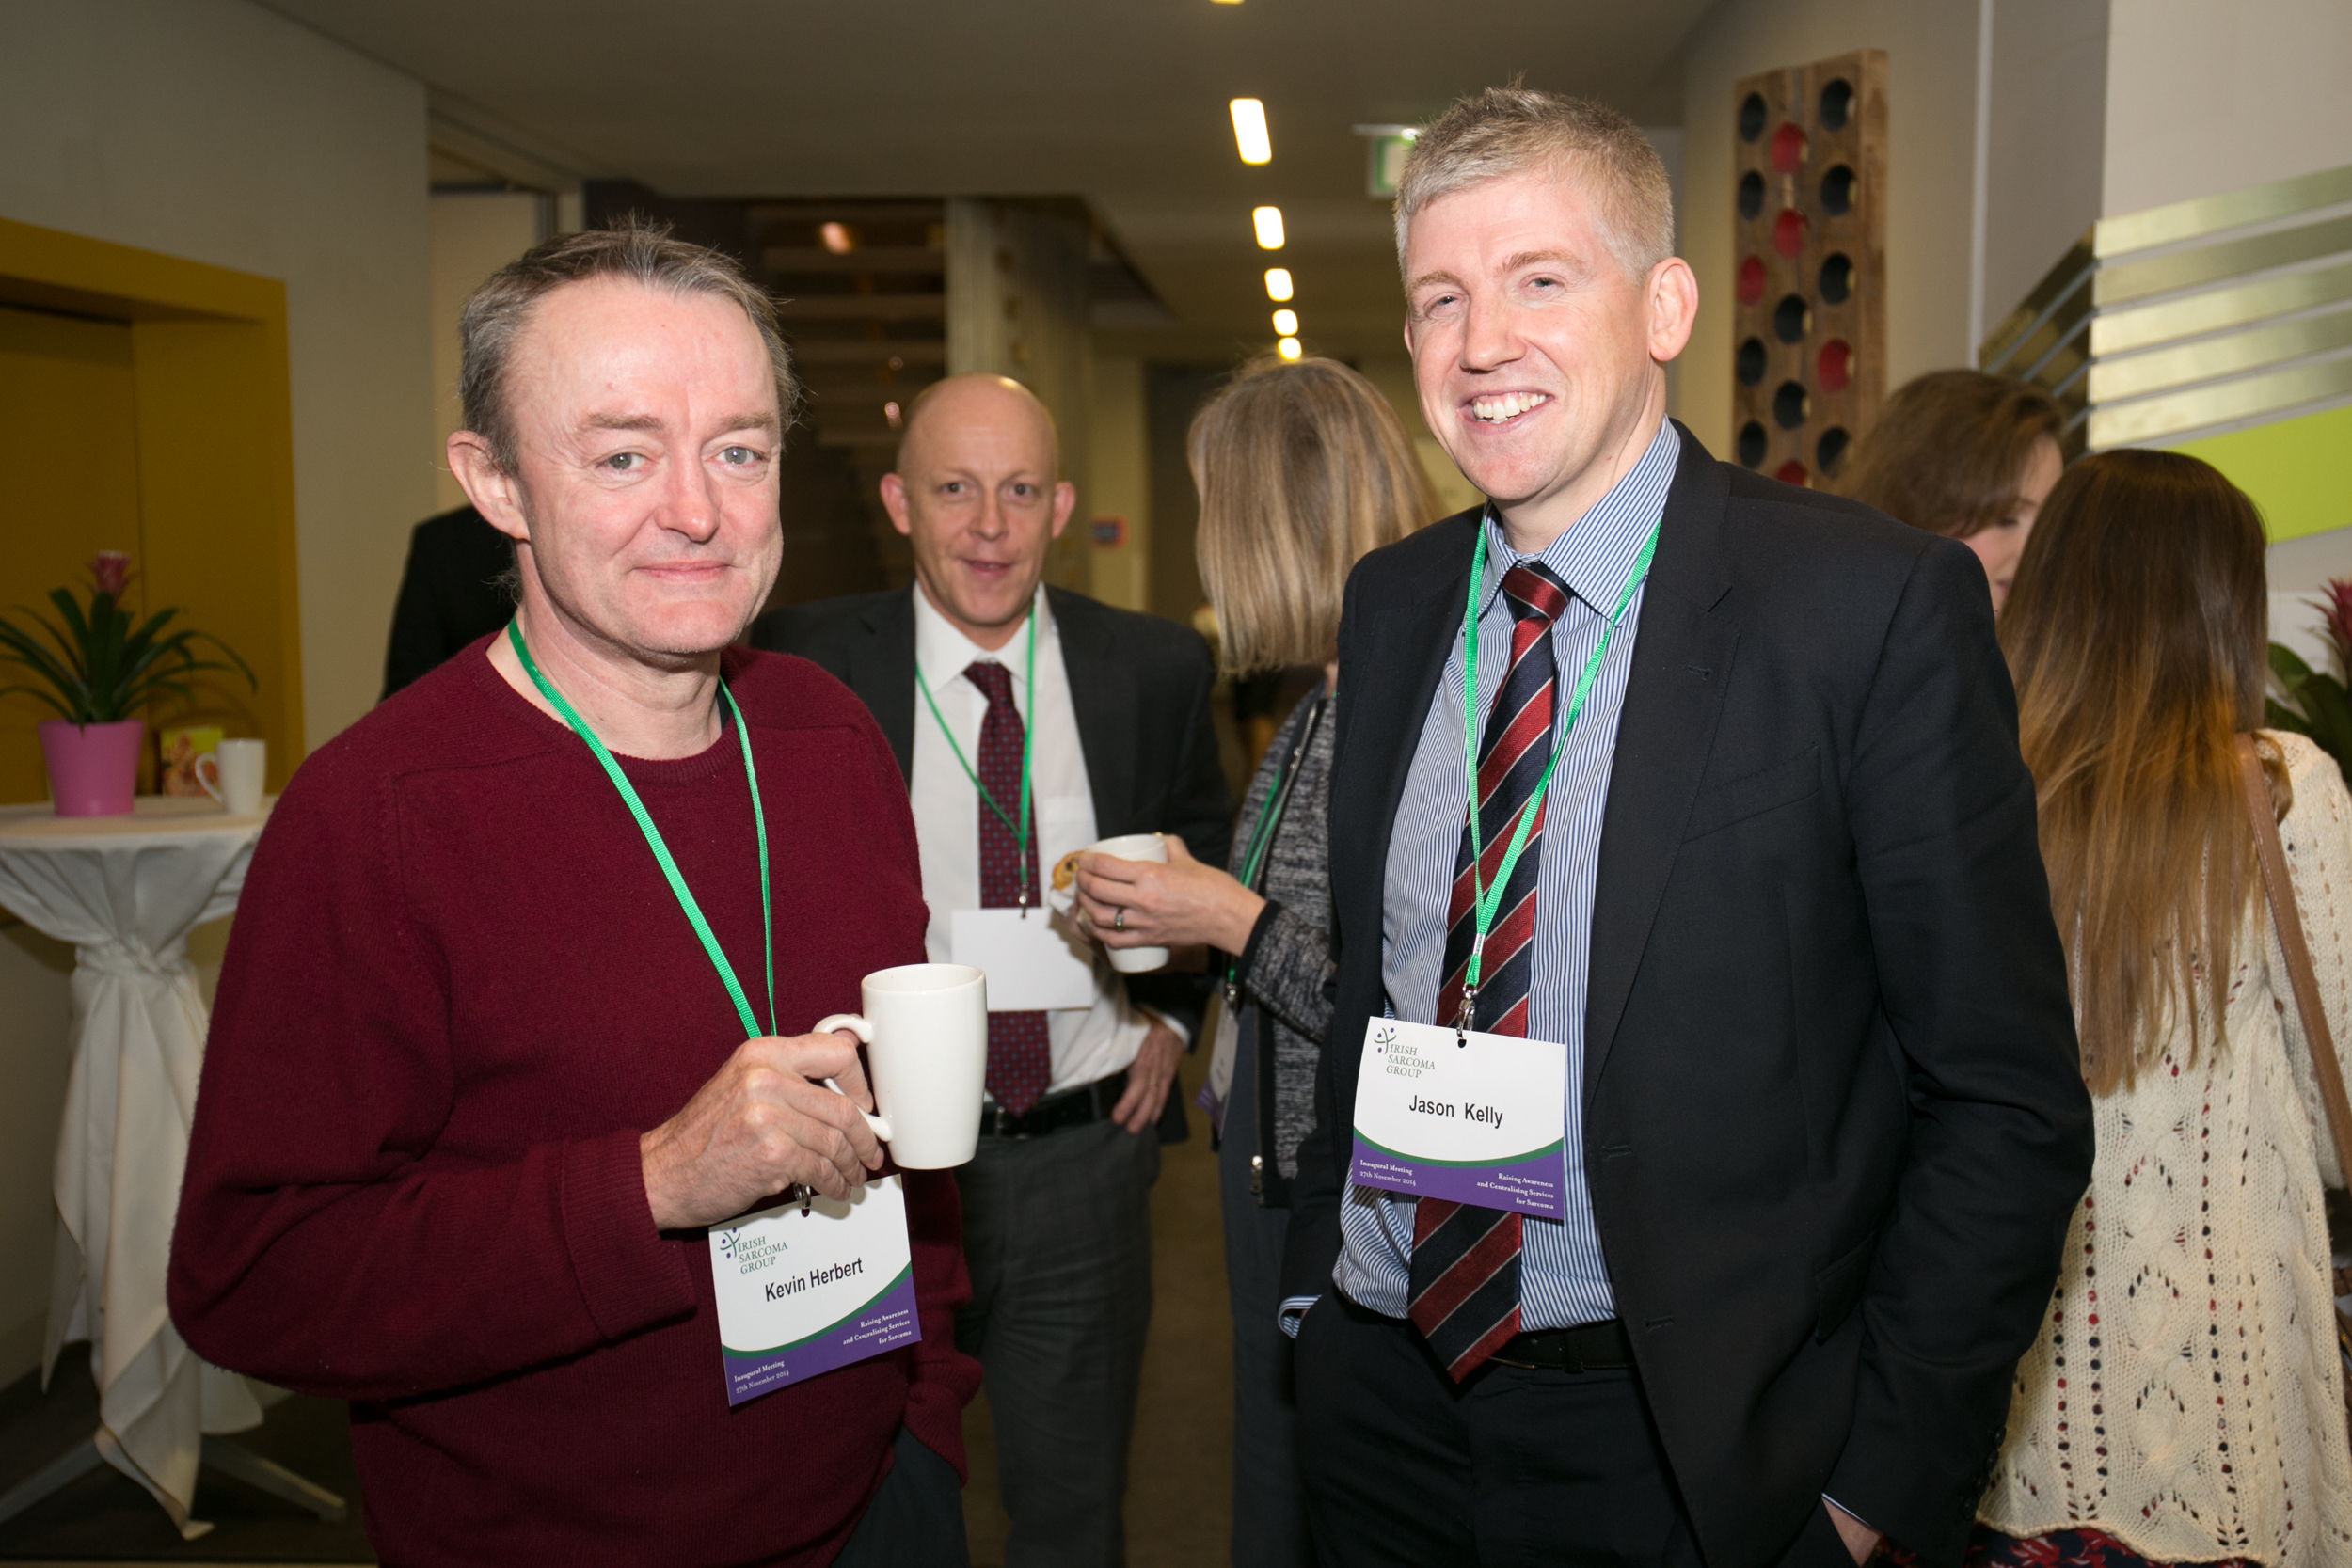 Mr Kevin Herbert, Plastic Surgeon, Belfast City Hospital. Mr Jason Kelly, Plastic Surgeon, Cork University Hospital